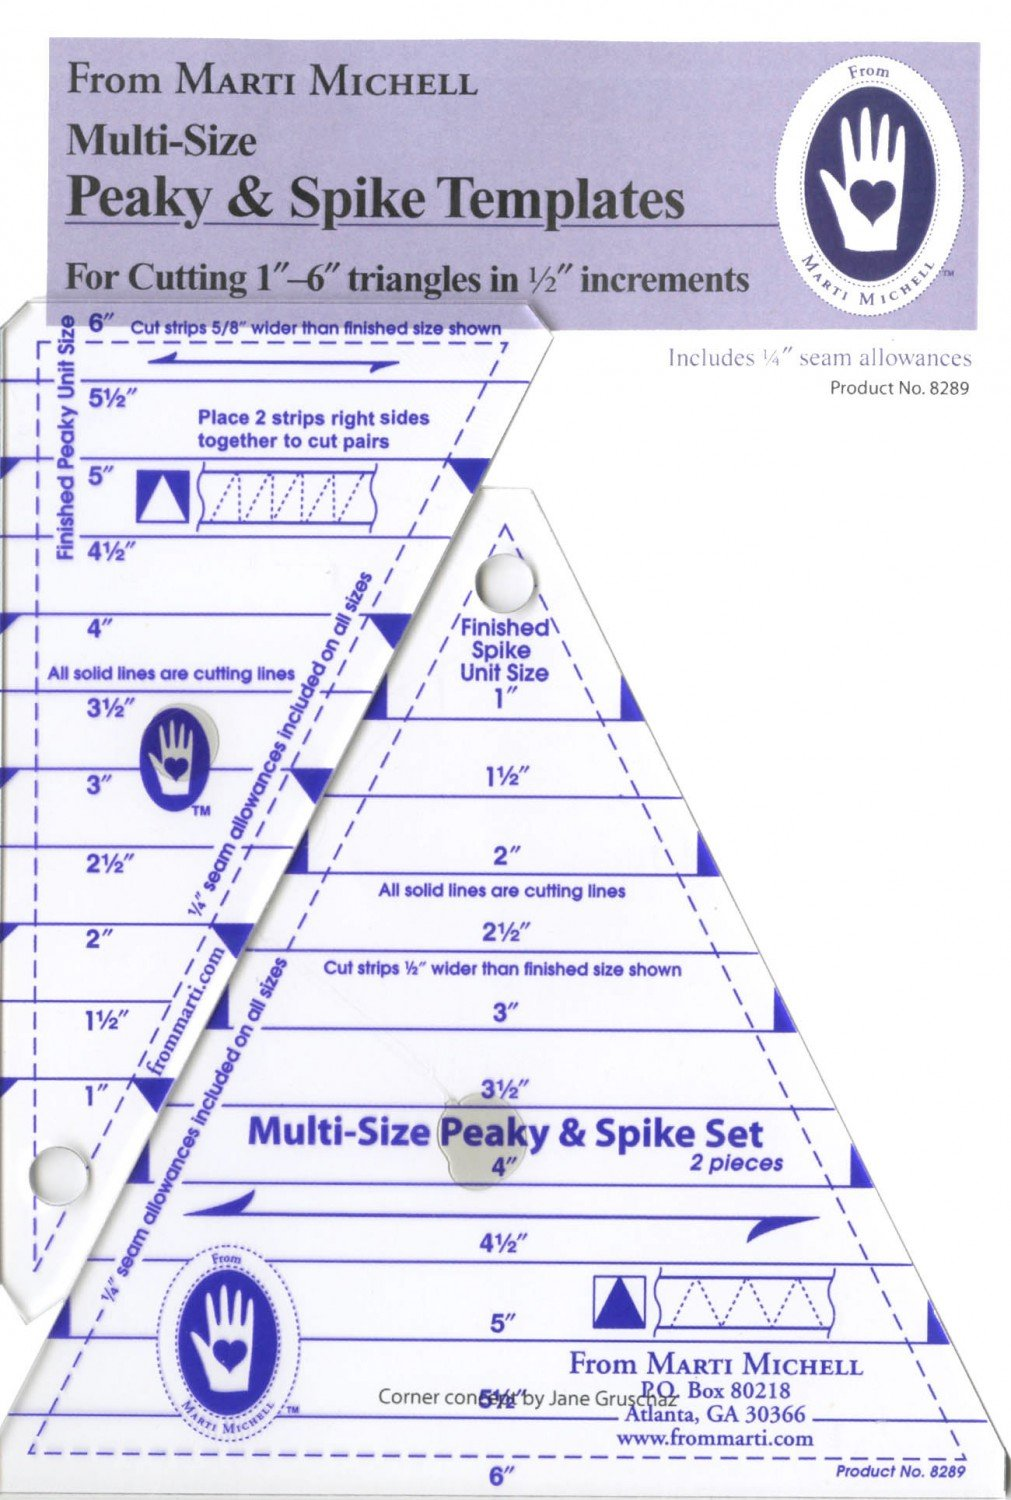 Marti Michell - Peaky and Spike Multiple Size Rulers - MM8289